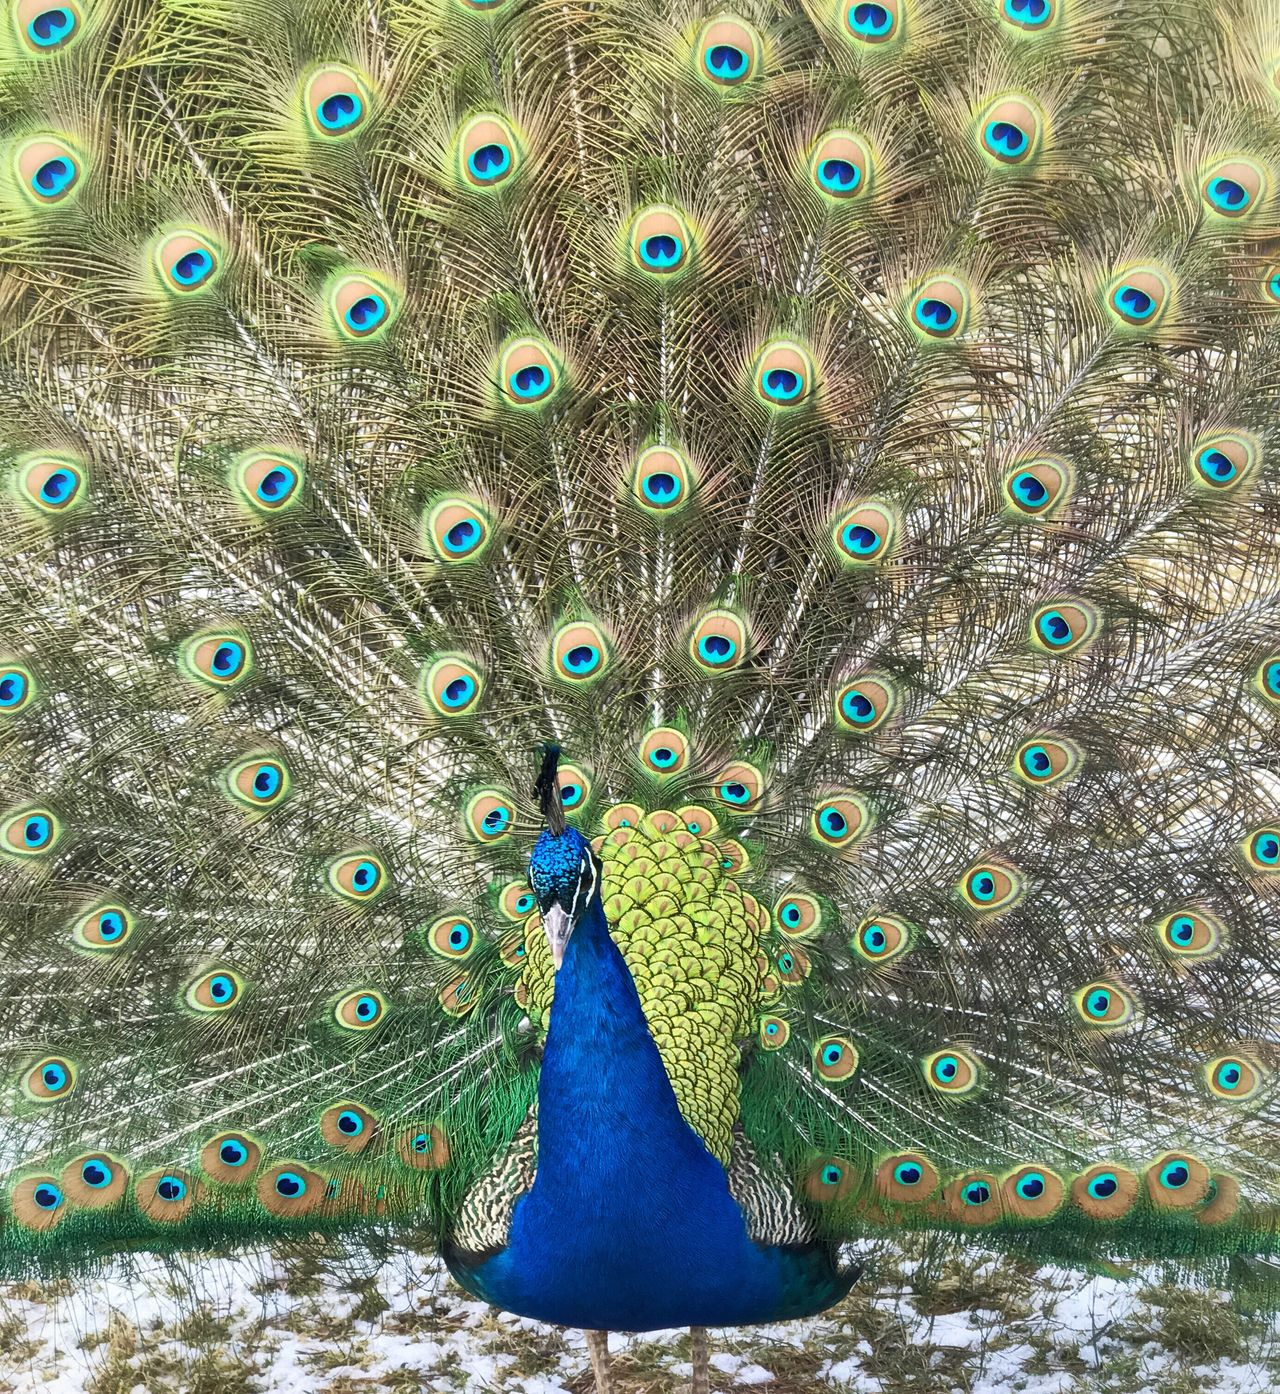 Peacock Peacock Bird Feather  Peacock Feather Blue Fanned Out Animal Themes Animal Wildlife Animals In The Wild No People One Animal Multi Colored Outdoors Beauty In Nature Close-up Day Nature Peacock Blue Peacock Colors Peacock Portrait EyeEmNewHere Ruhrpott Haltern Am See Wildpark Nature